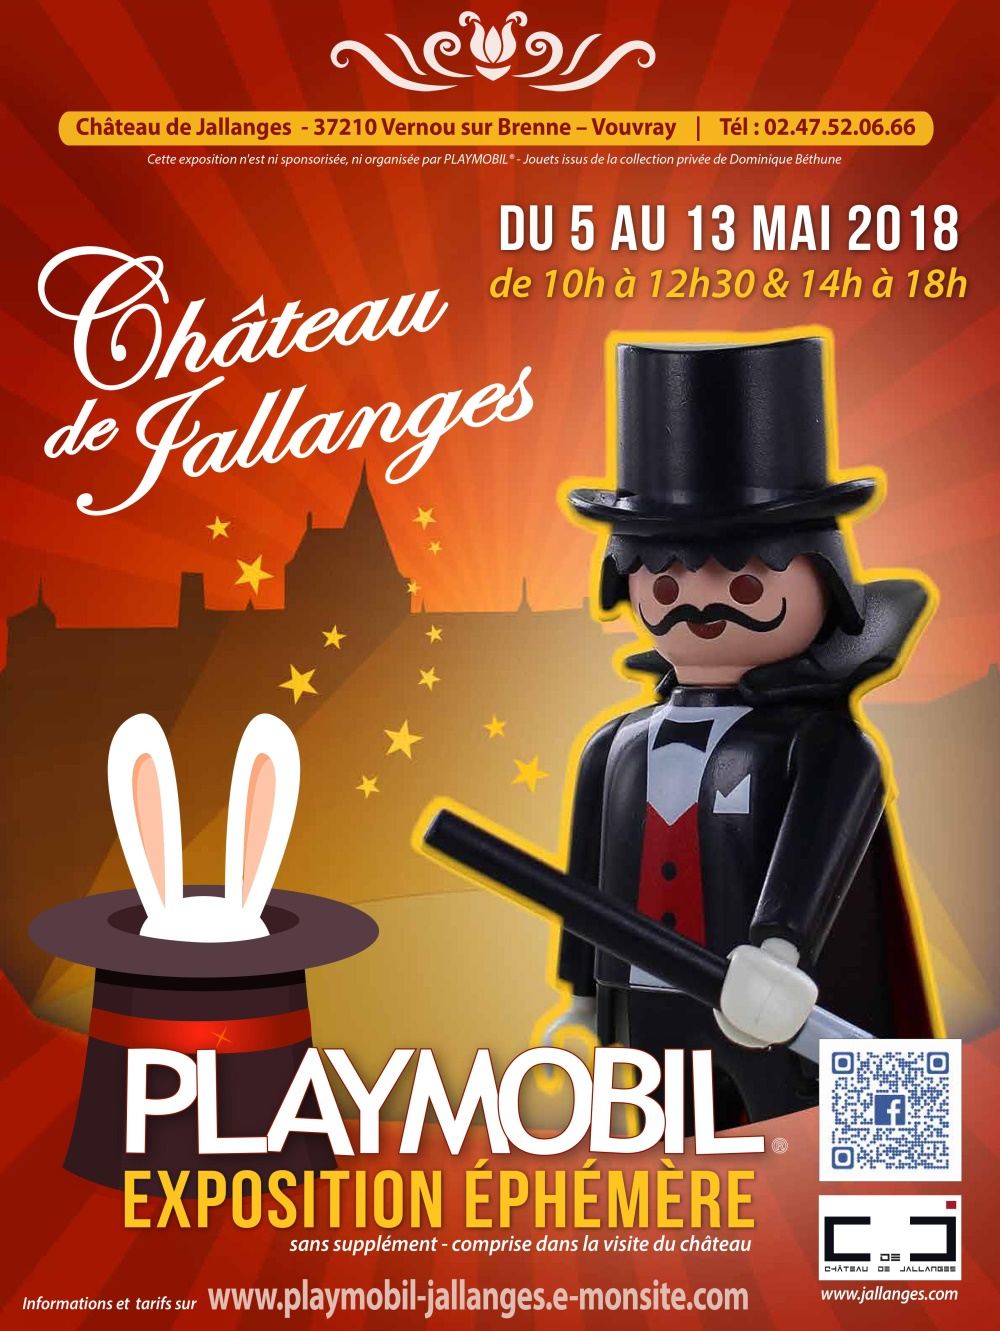 Exposition playmobil au chateau de jallanges mai 2018